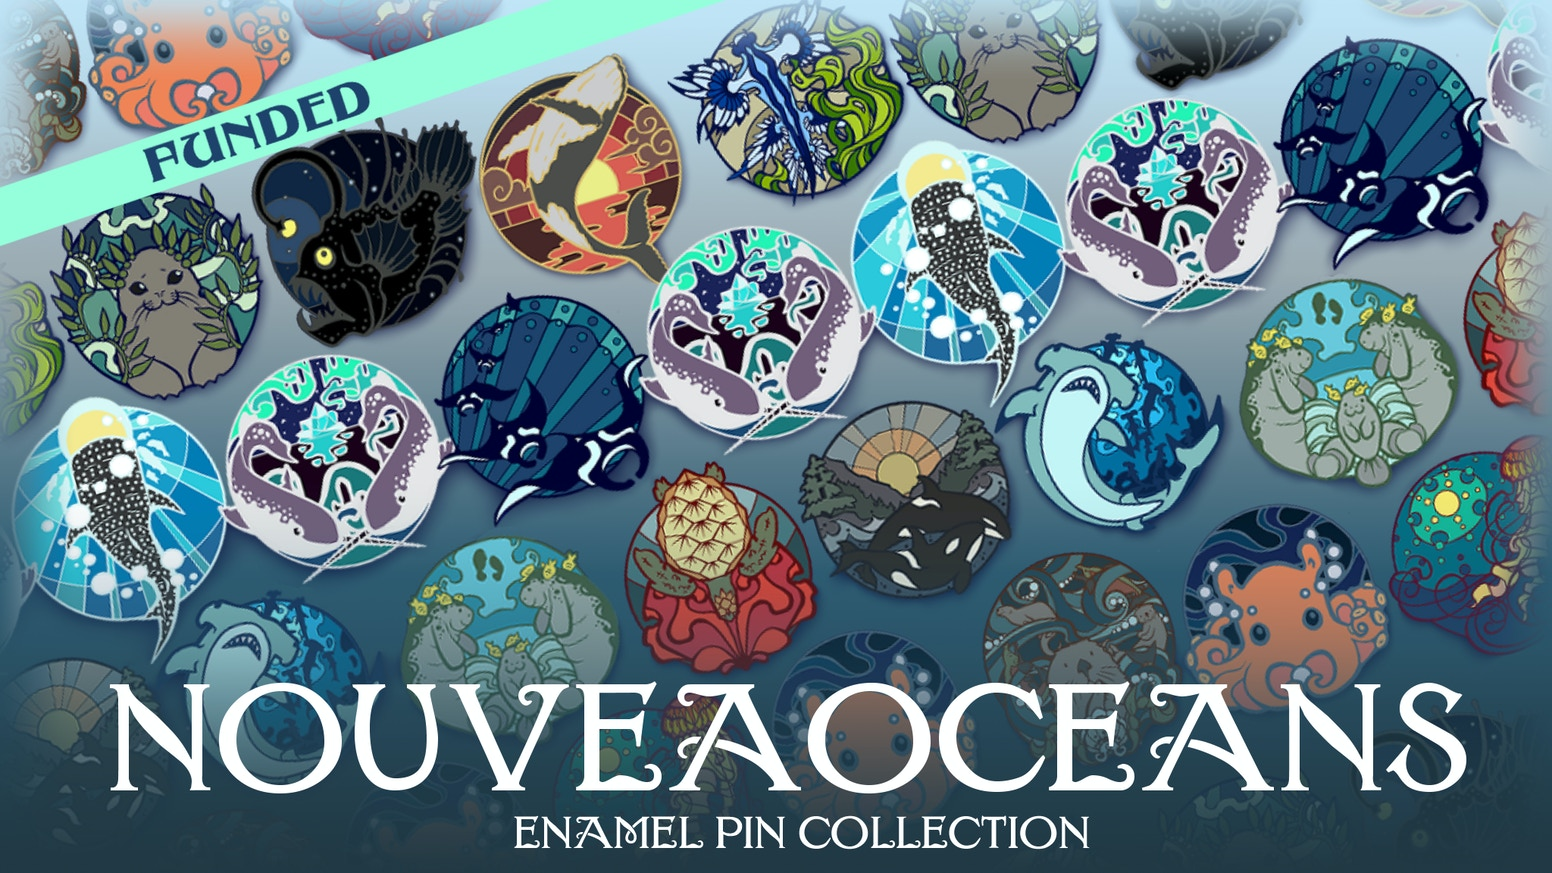 A collection of art nouveau-inspired, ocean-themed enamel pins.